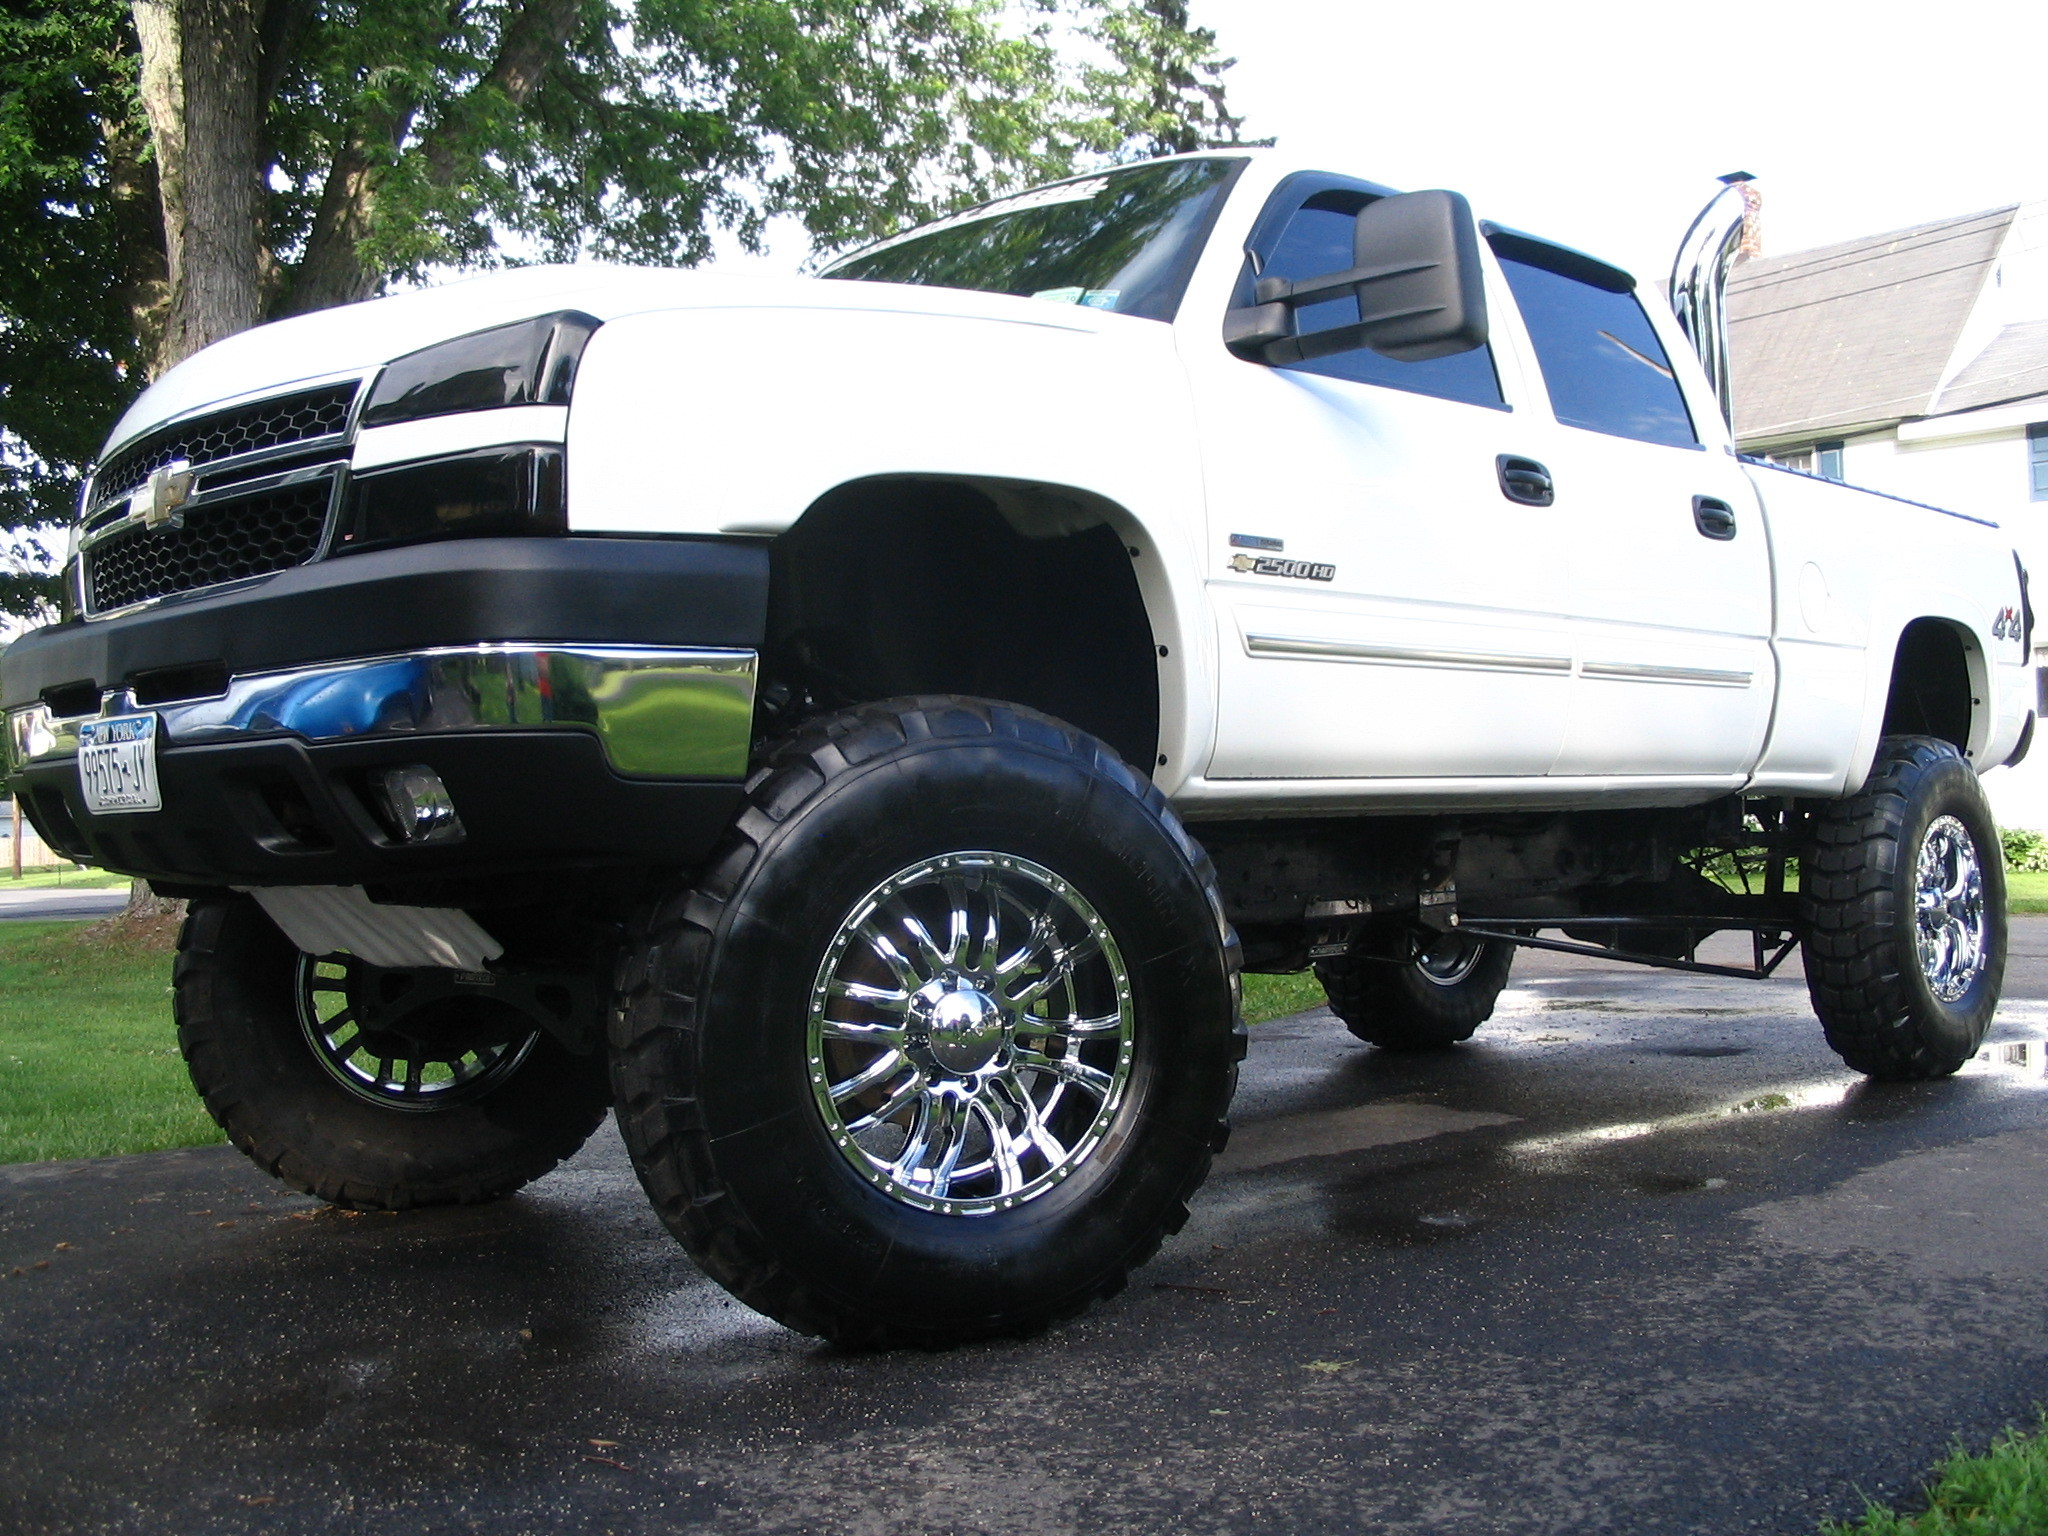 06Duramax425HD 2006 Chevrolet Silverado 1500 Regular Cab ...